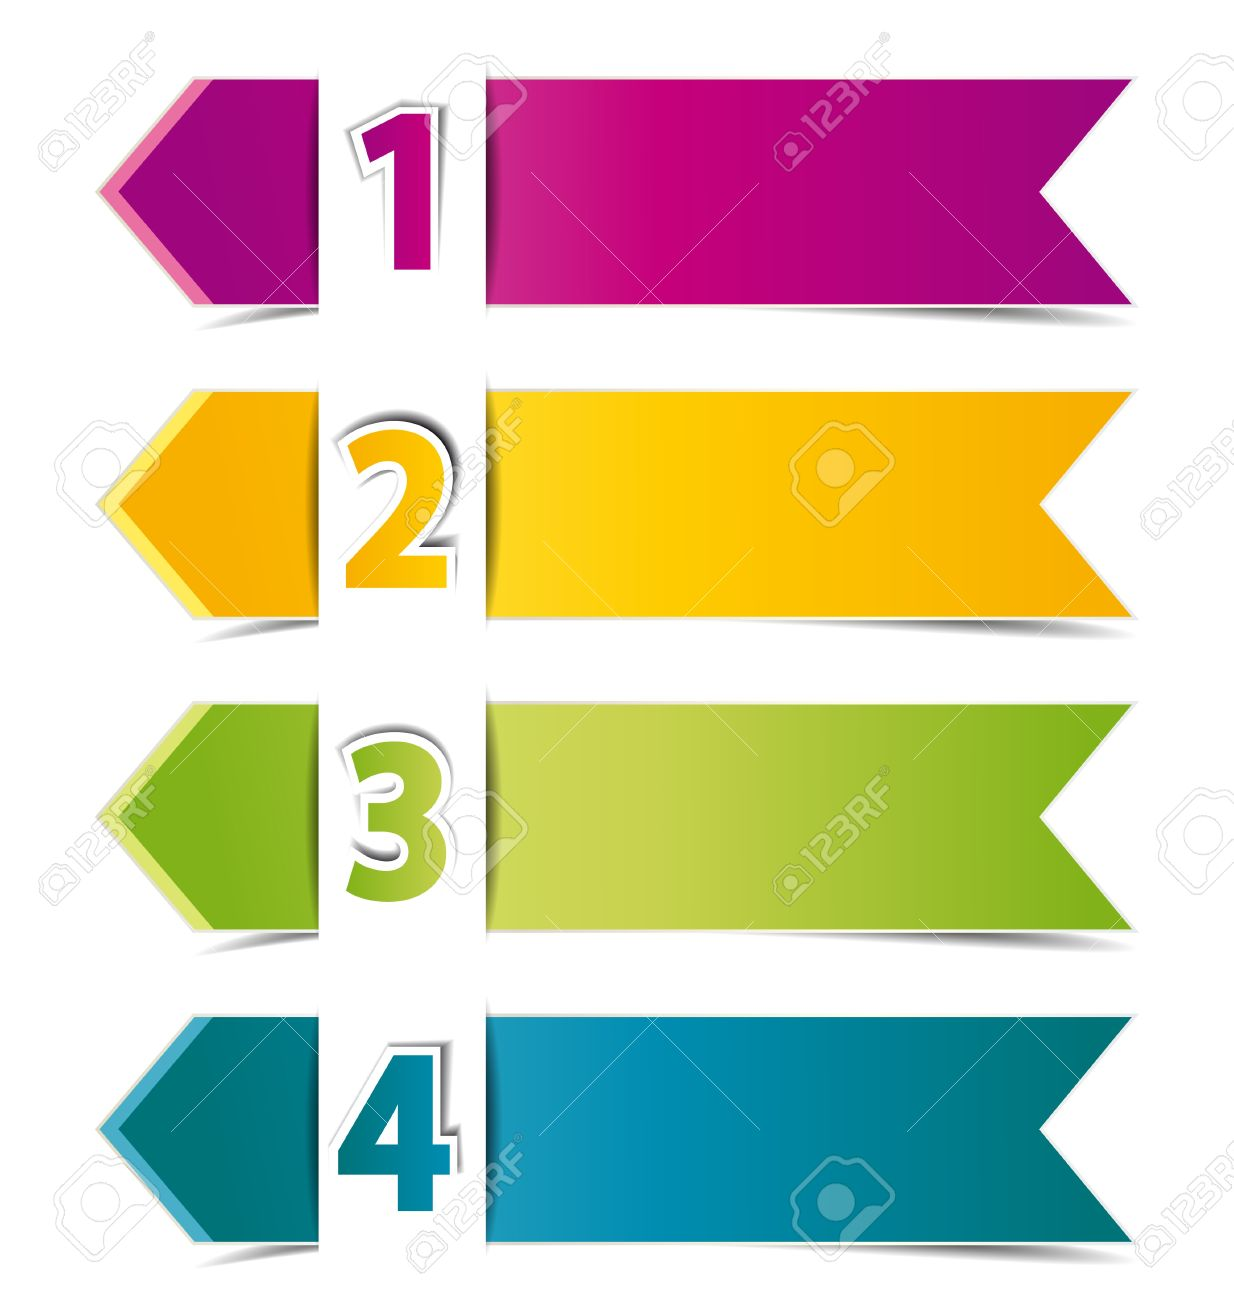 Design Template Numbered Banners Royalty Free Cliparts, Vectors ...